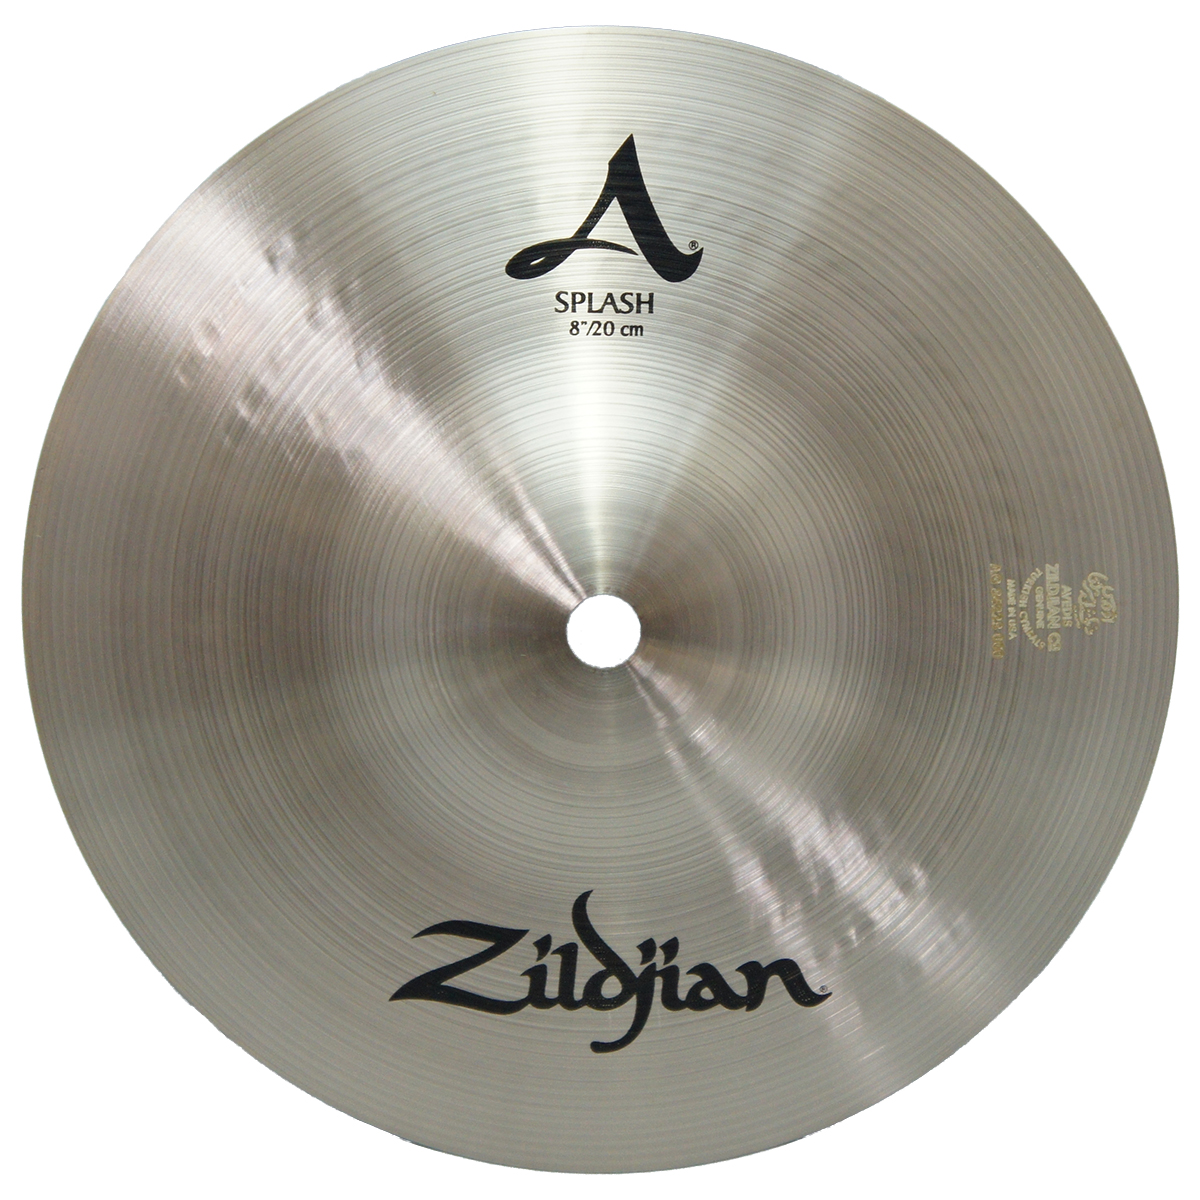 zildjian 8 a series splash drumset cymbal with crash type traditional finish a0210 used. Black Bedroom Furniture Sets. Home Design Ideas